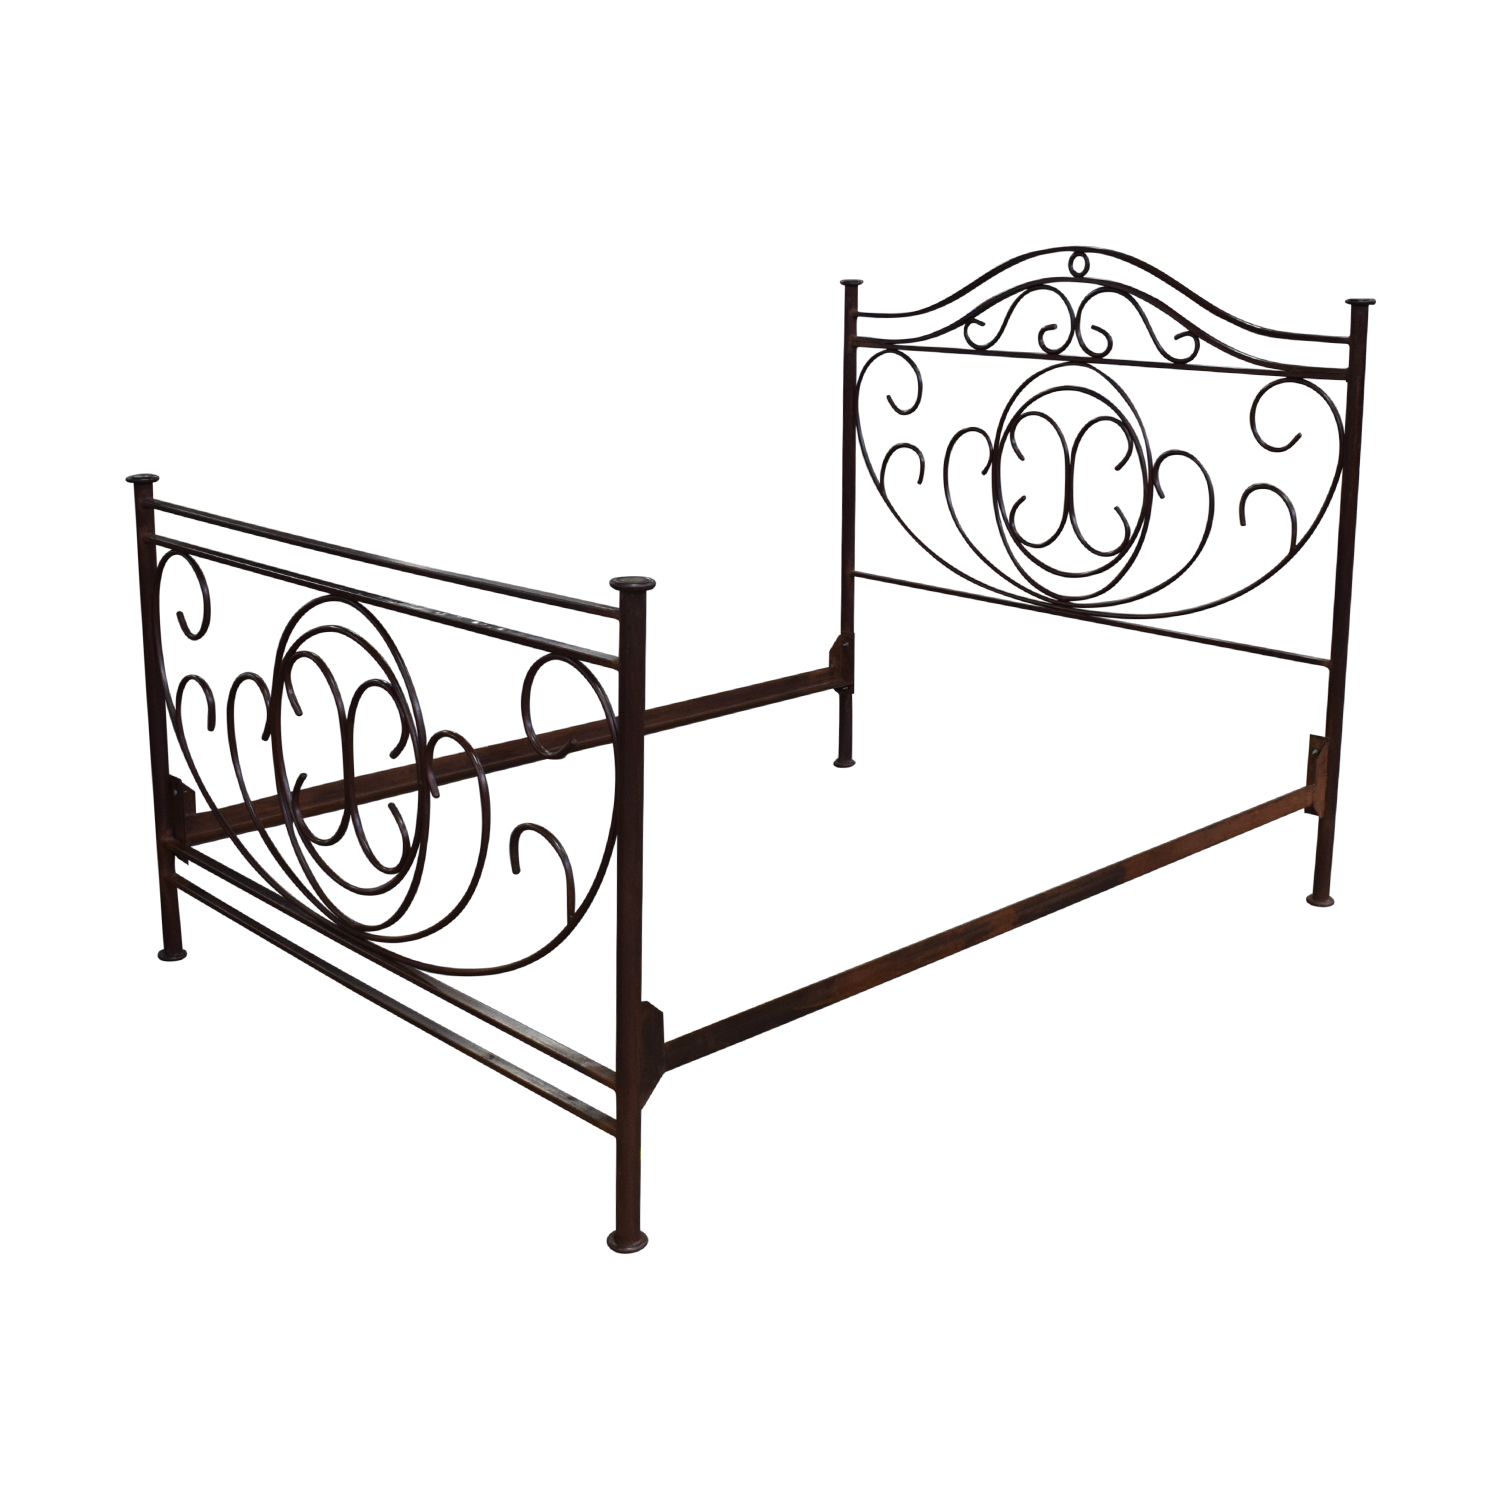 Restoration Hardware Restoration Hardware Brass Queen Bed Frame nj